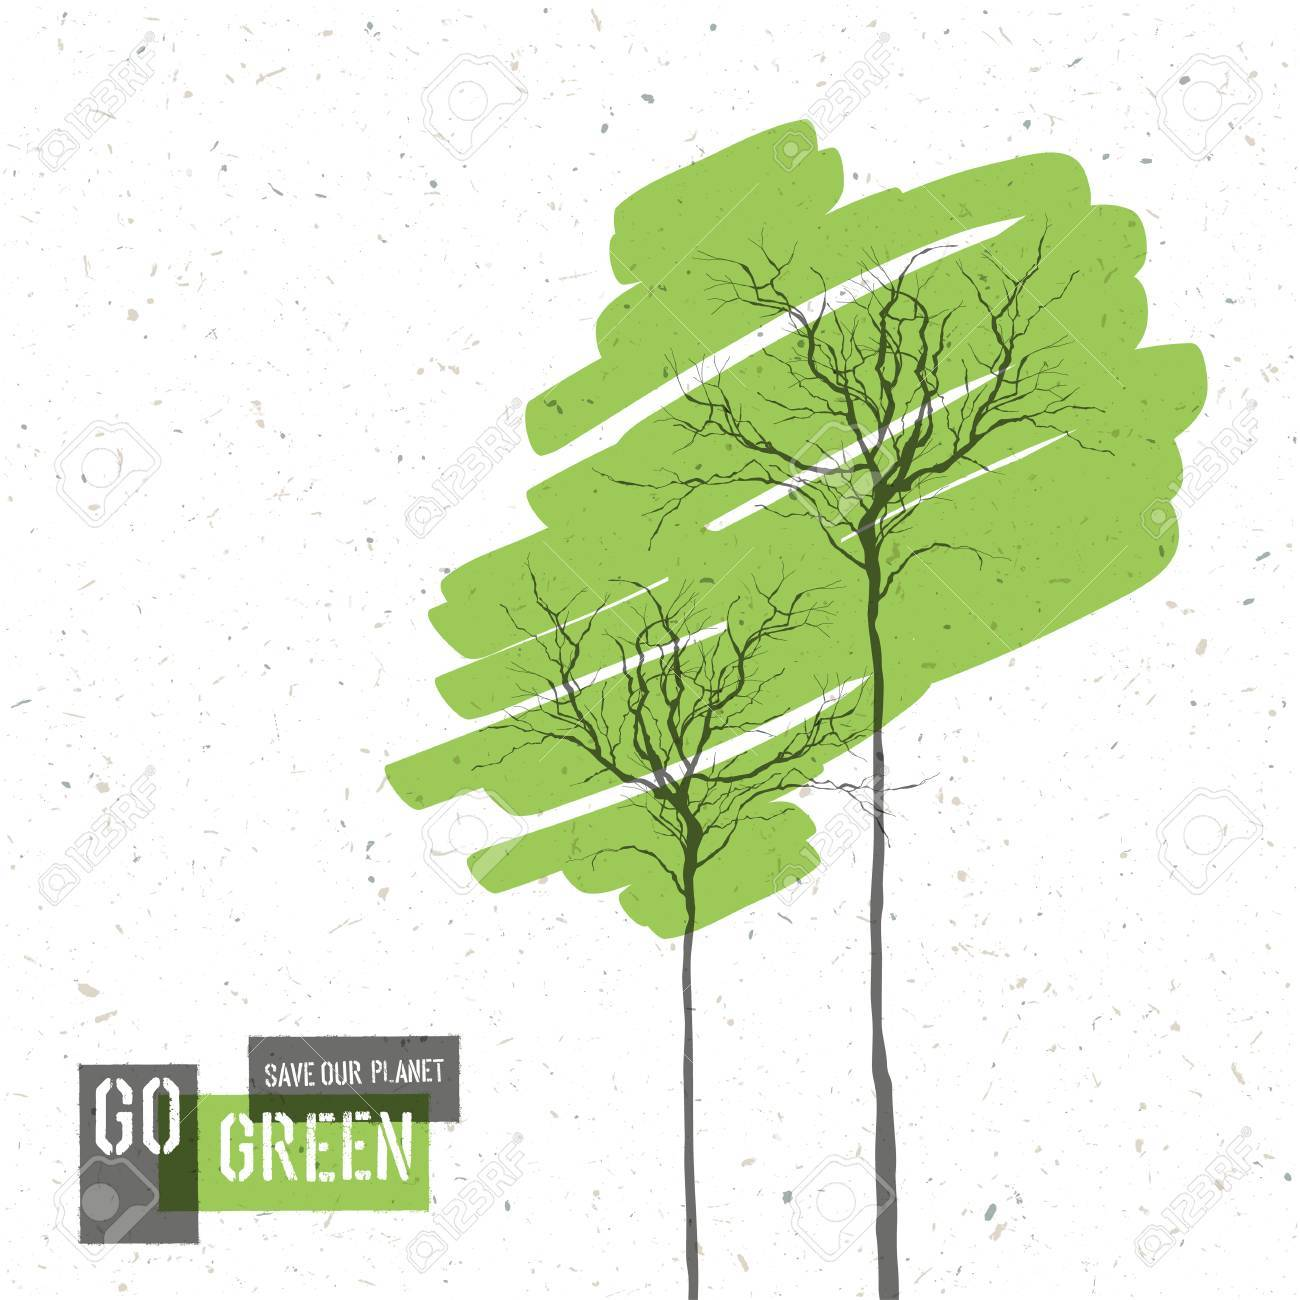 Go Green Concept Poster With Trees. Vector - 33733752